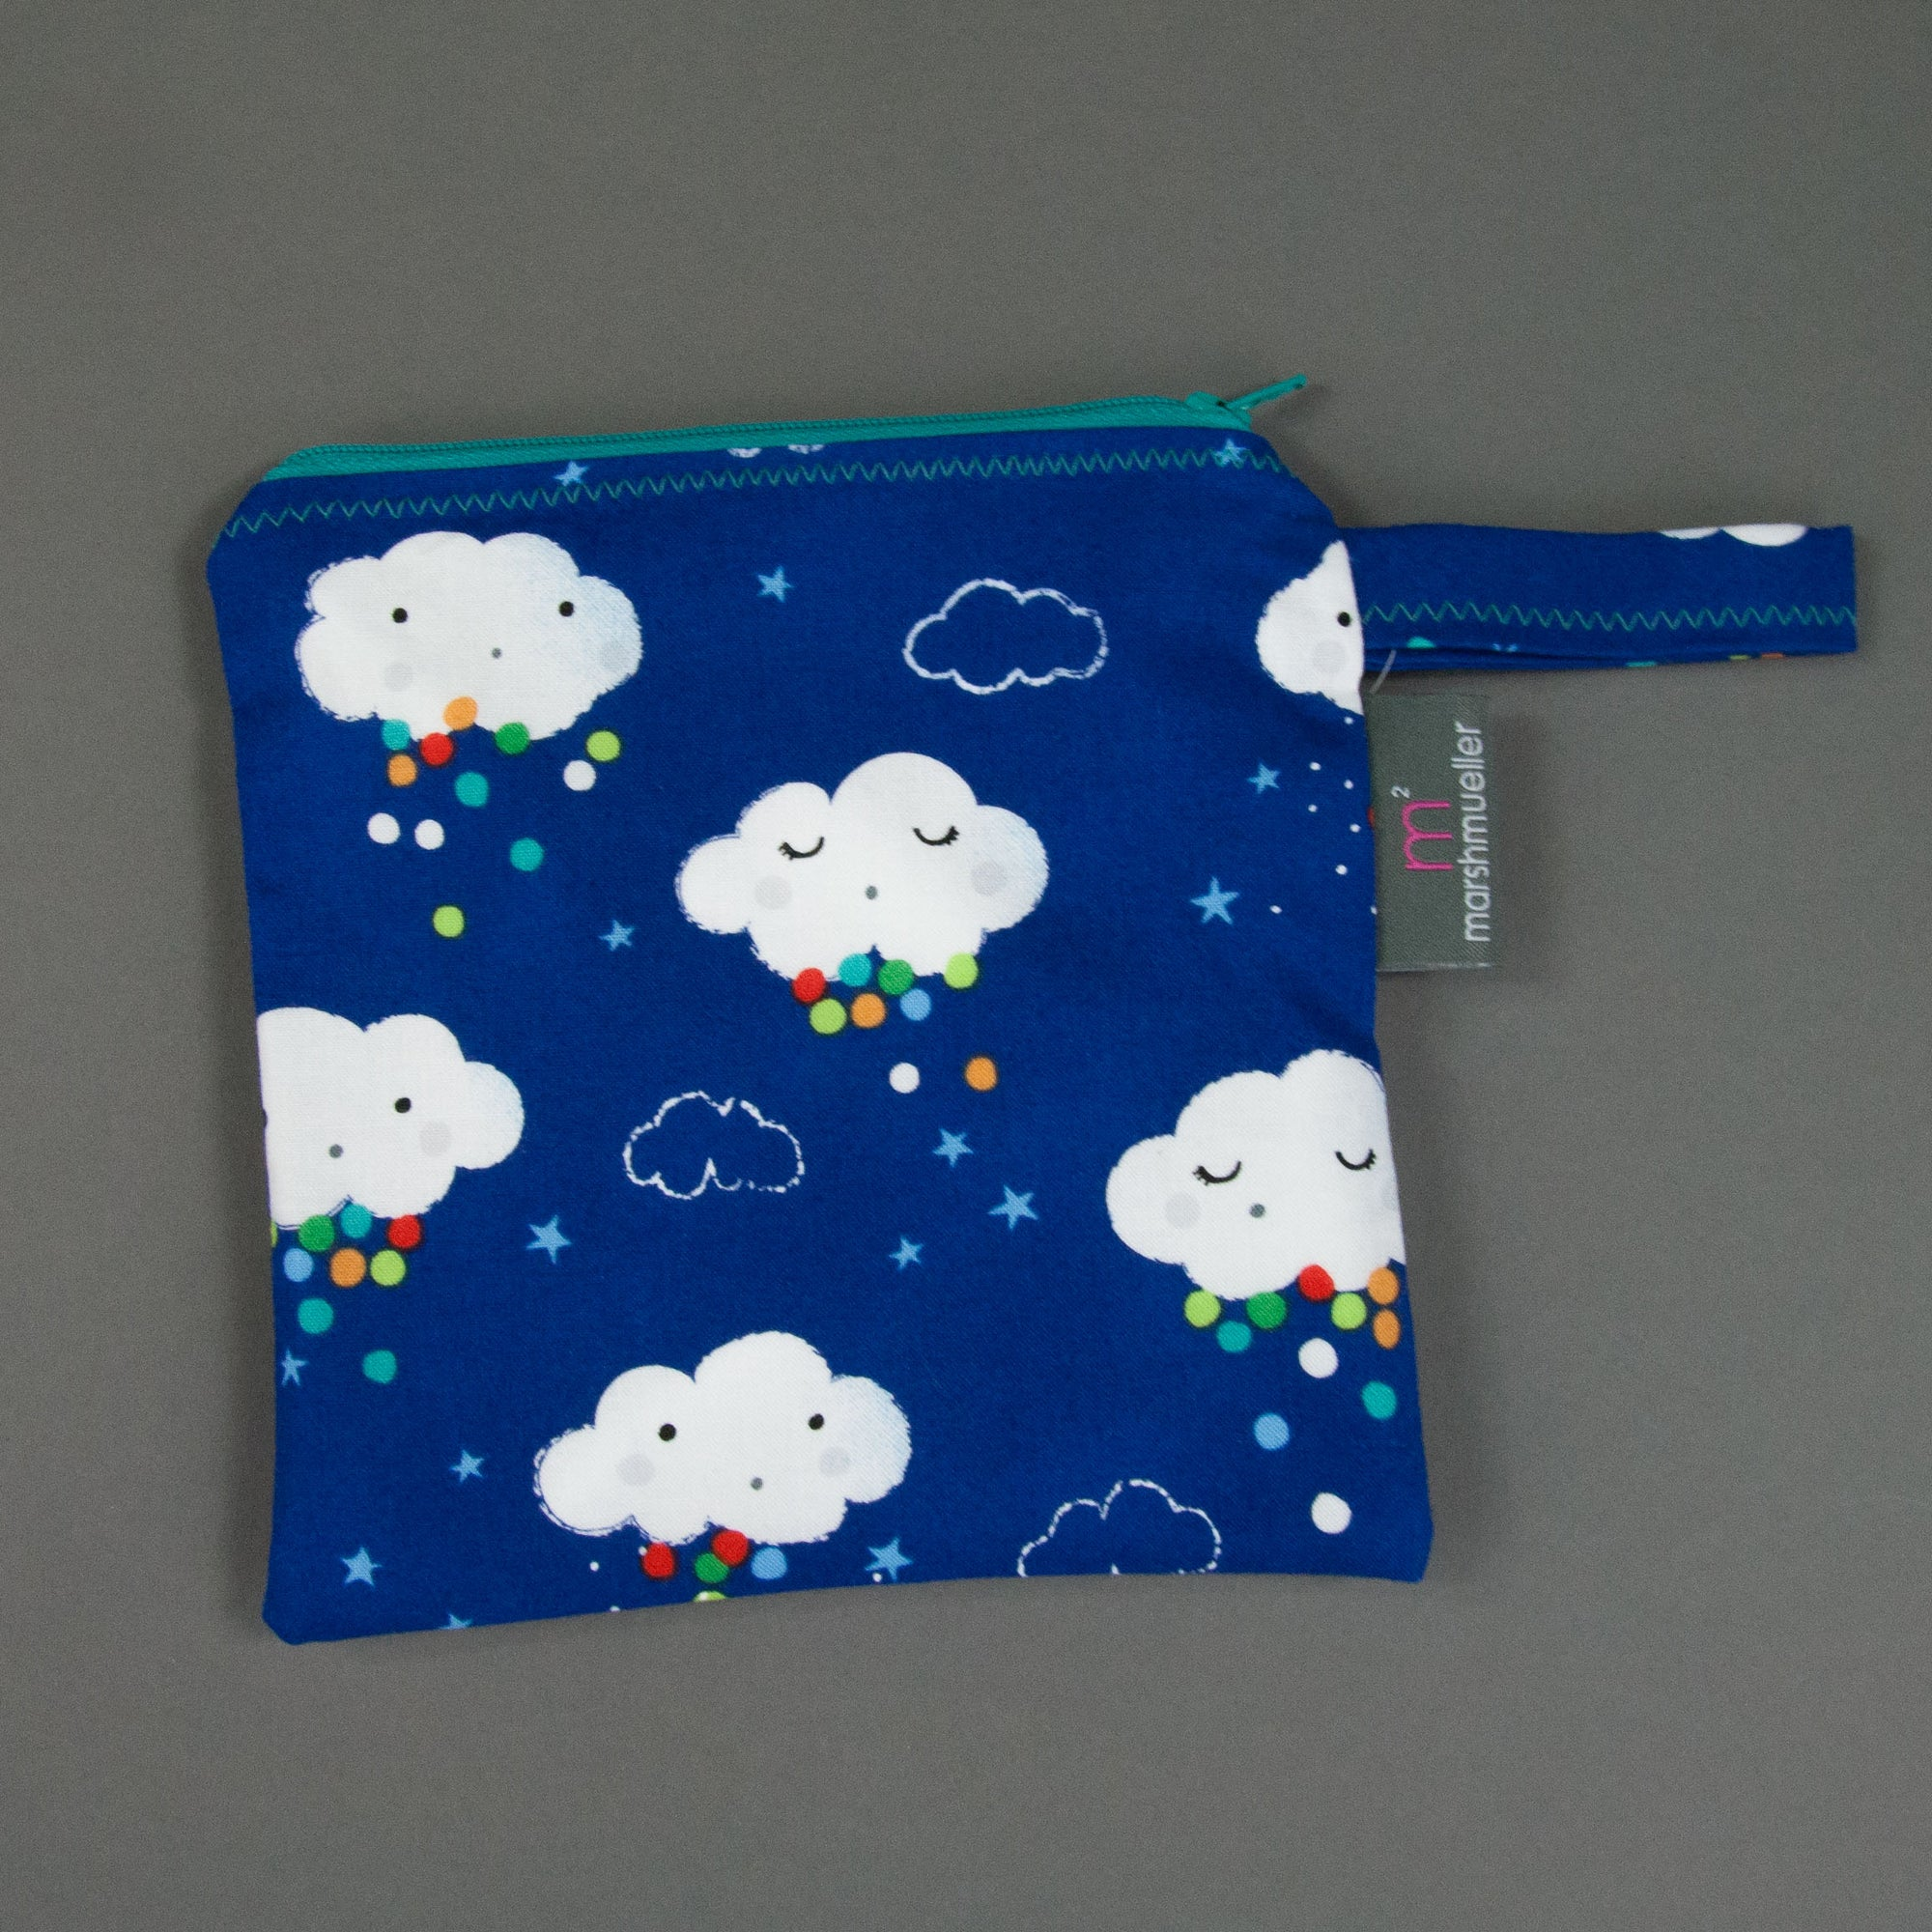 Blue Rain Clouds Reusable Sandwich Bag, Reusable Sandwich Bag, - MarshMueller